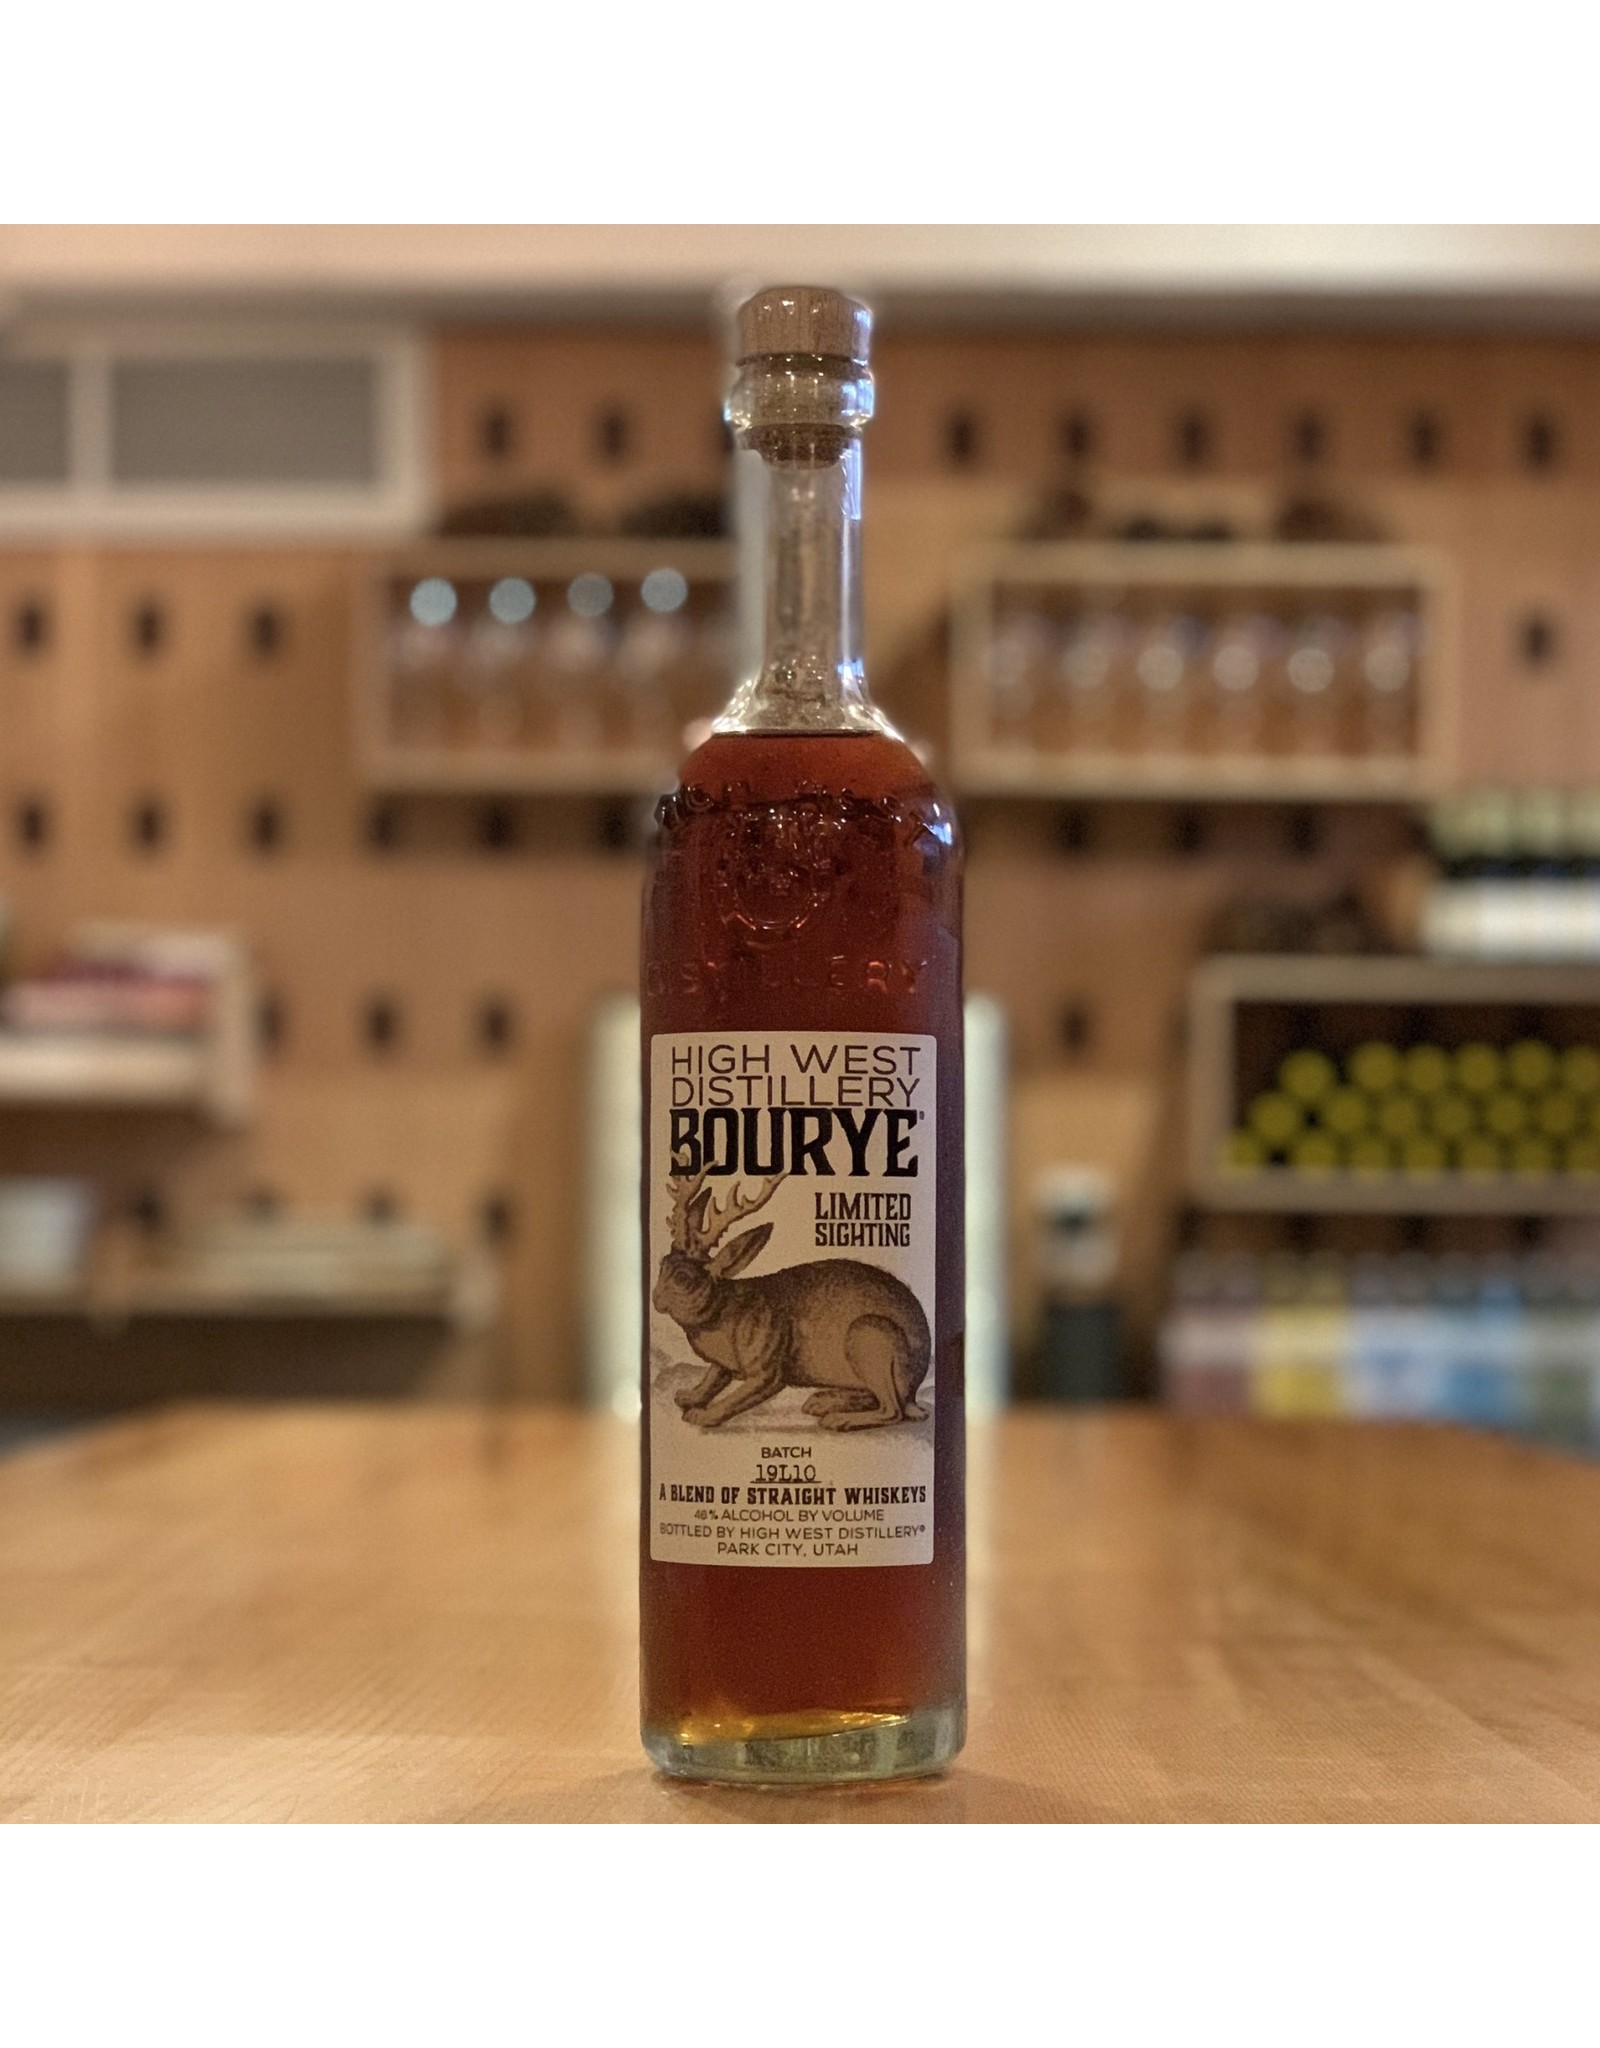 "High West Distillery ""Bourye"" Limited Sighting, Straight Whiskey Blend - Park City, Utah"